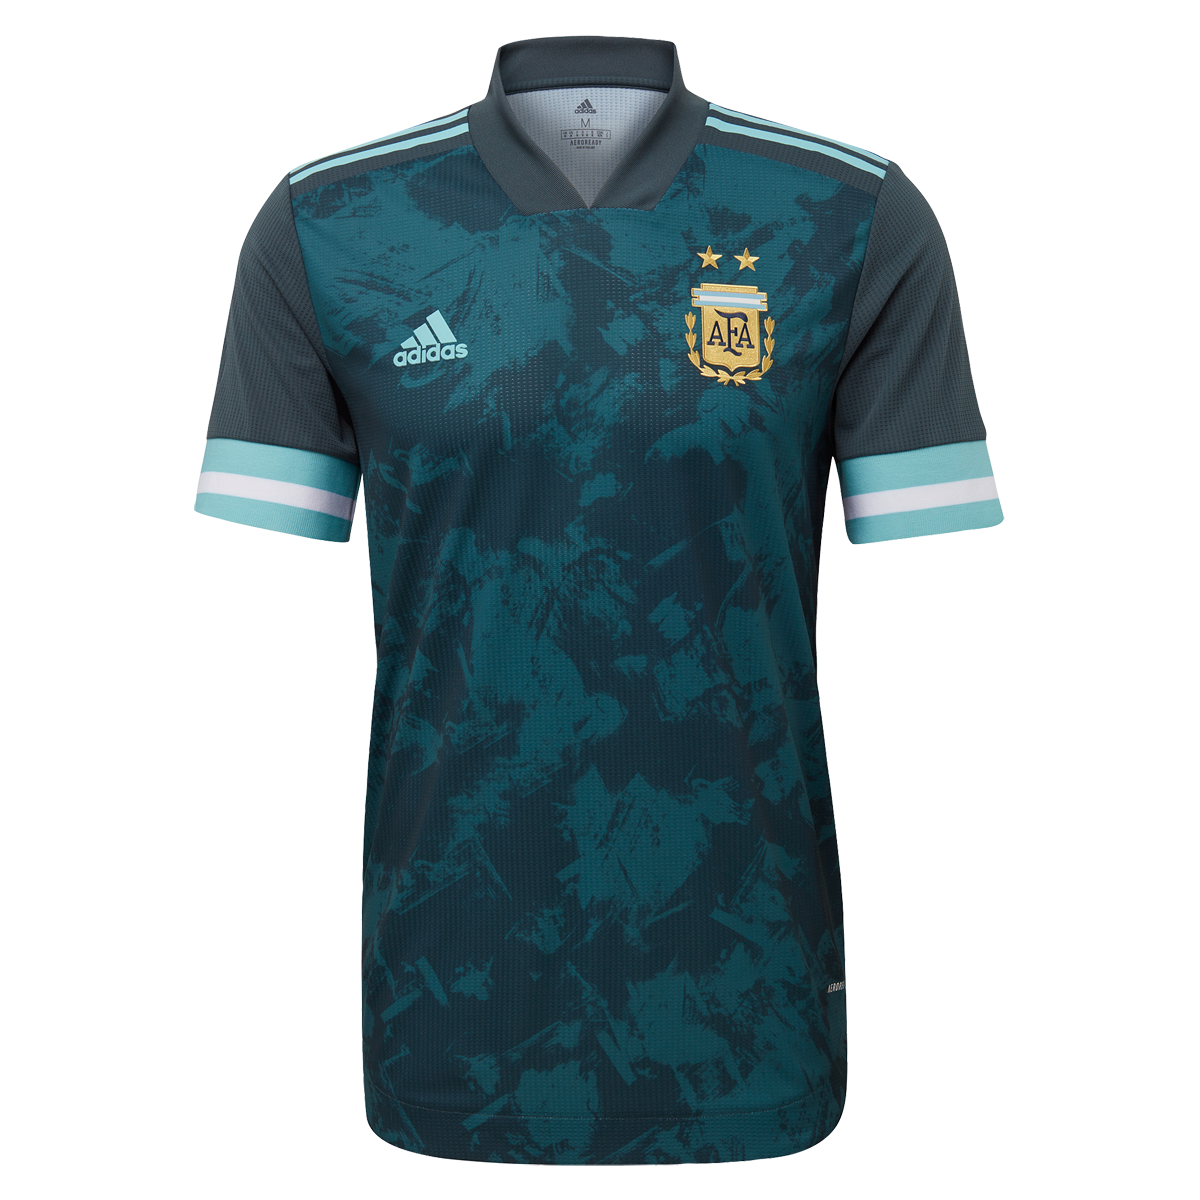 Adidas Argentina Authentic Away Jersey 2020 S World Soccer Shop Soccer Shop Sports Design